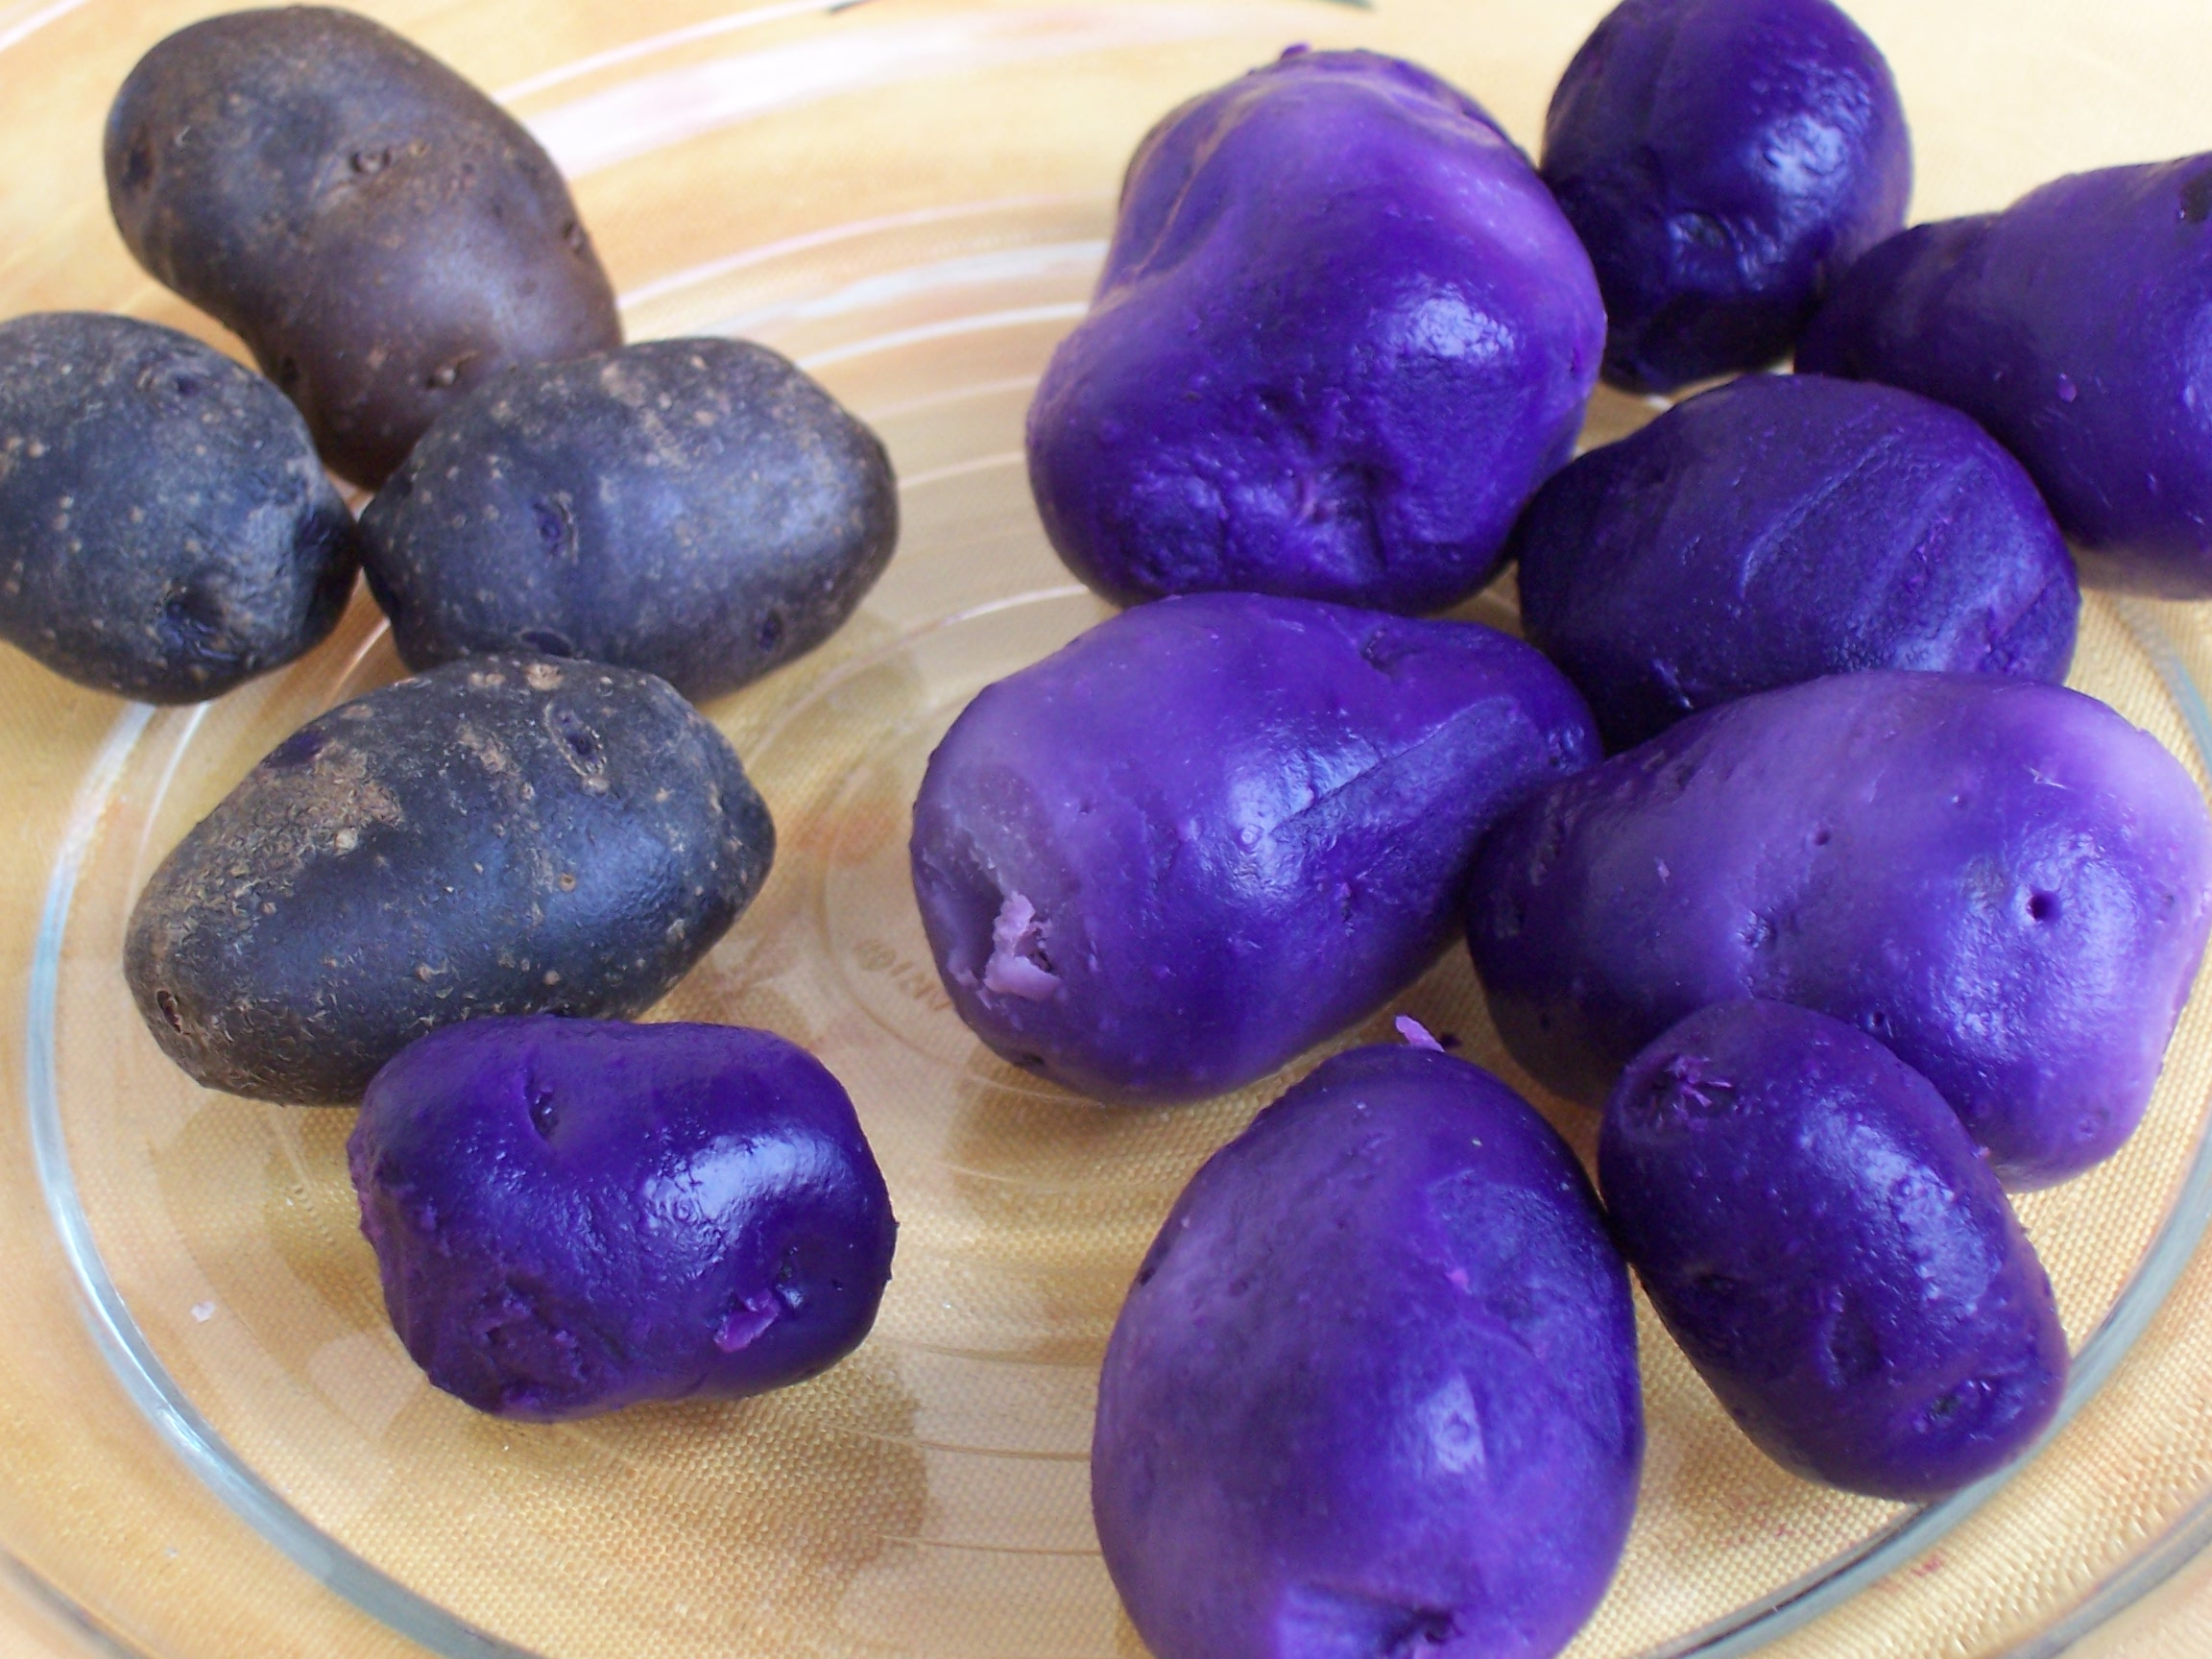 Potatoes_Vitelotte[1].jpg